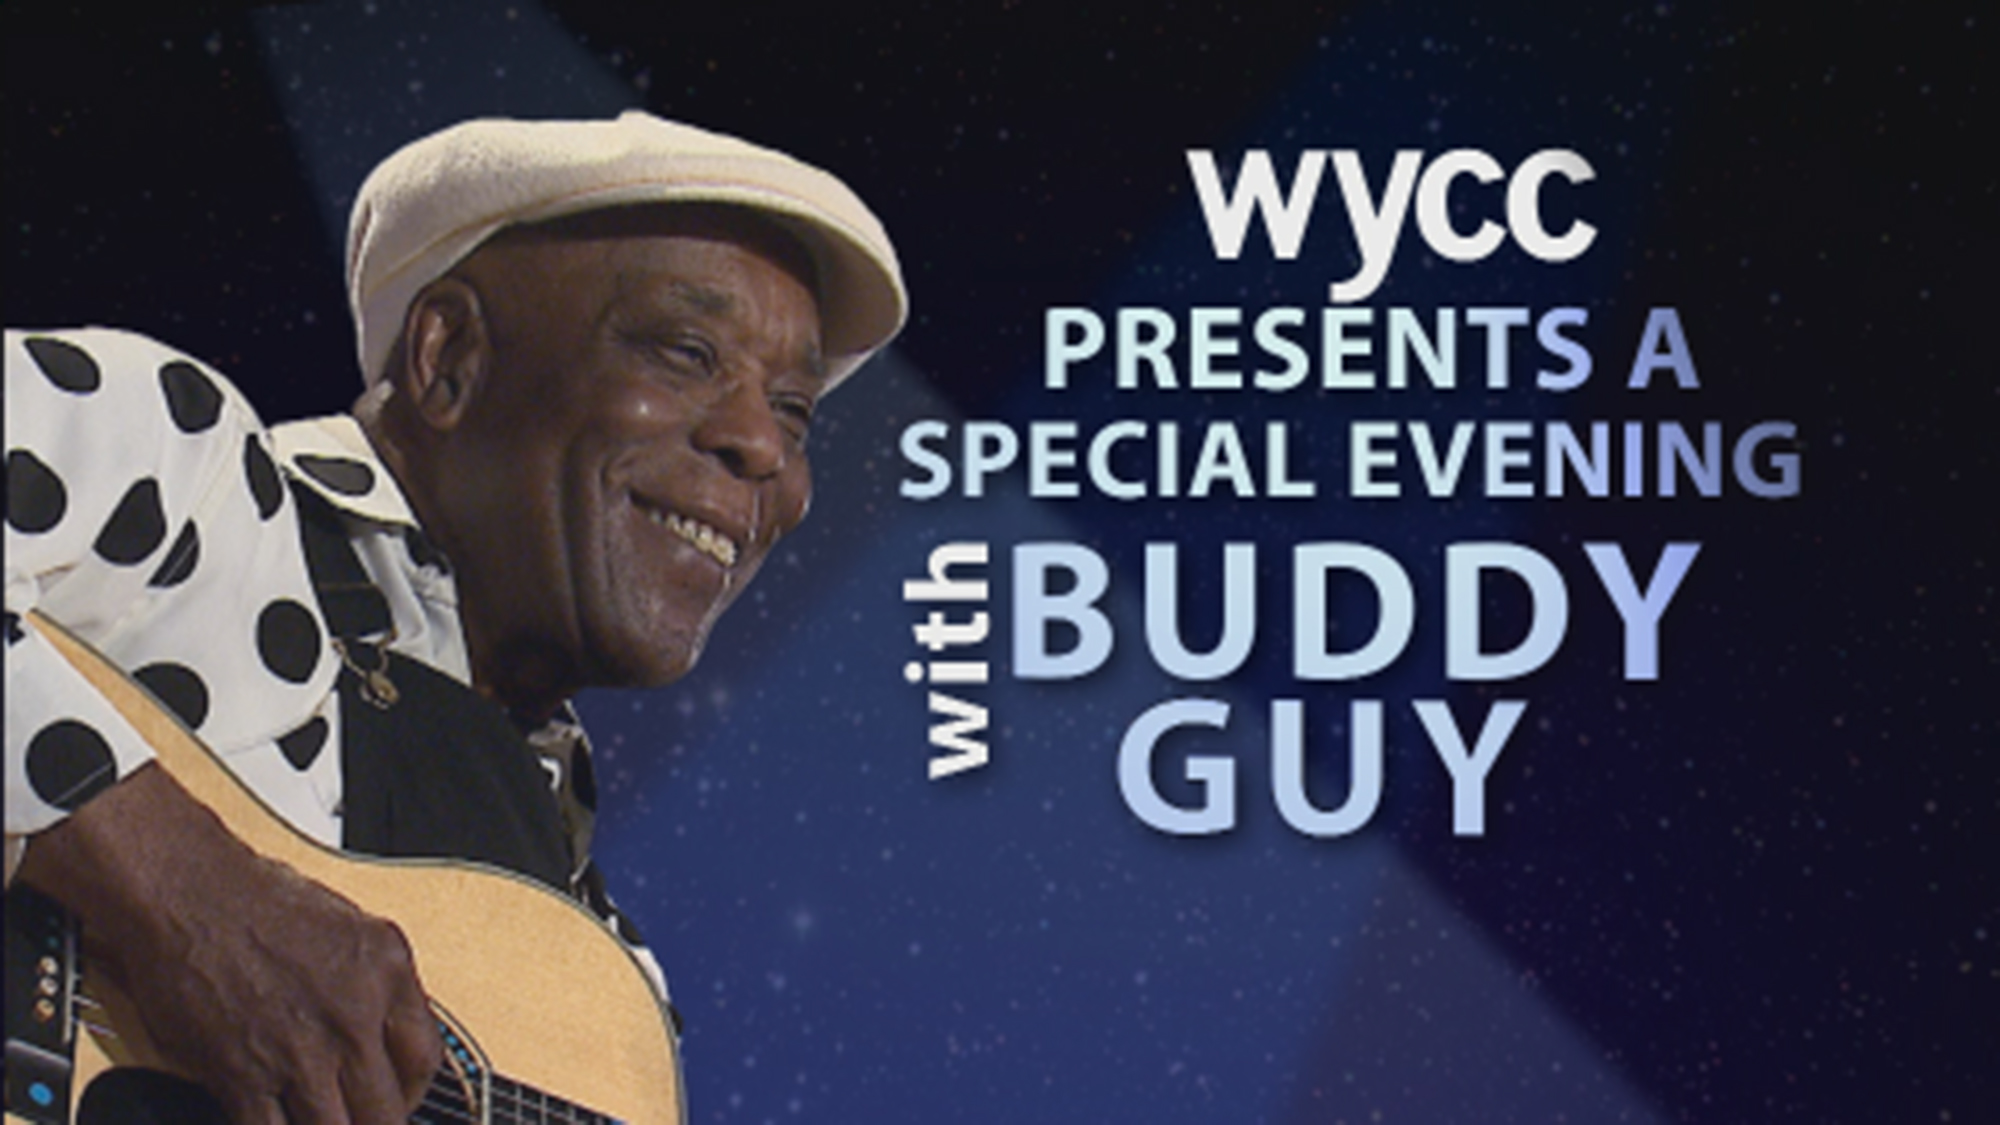 A Special Evening with Buddy Guy